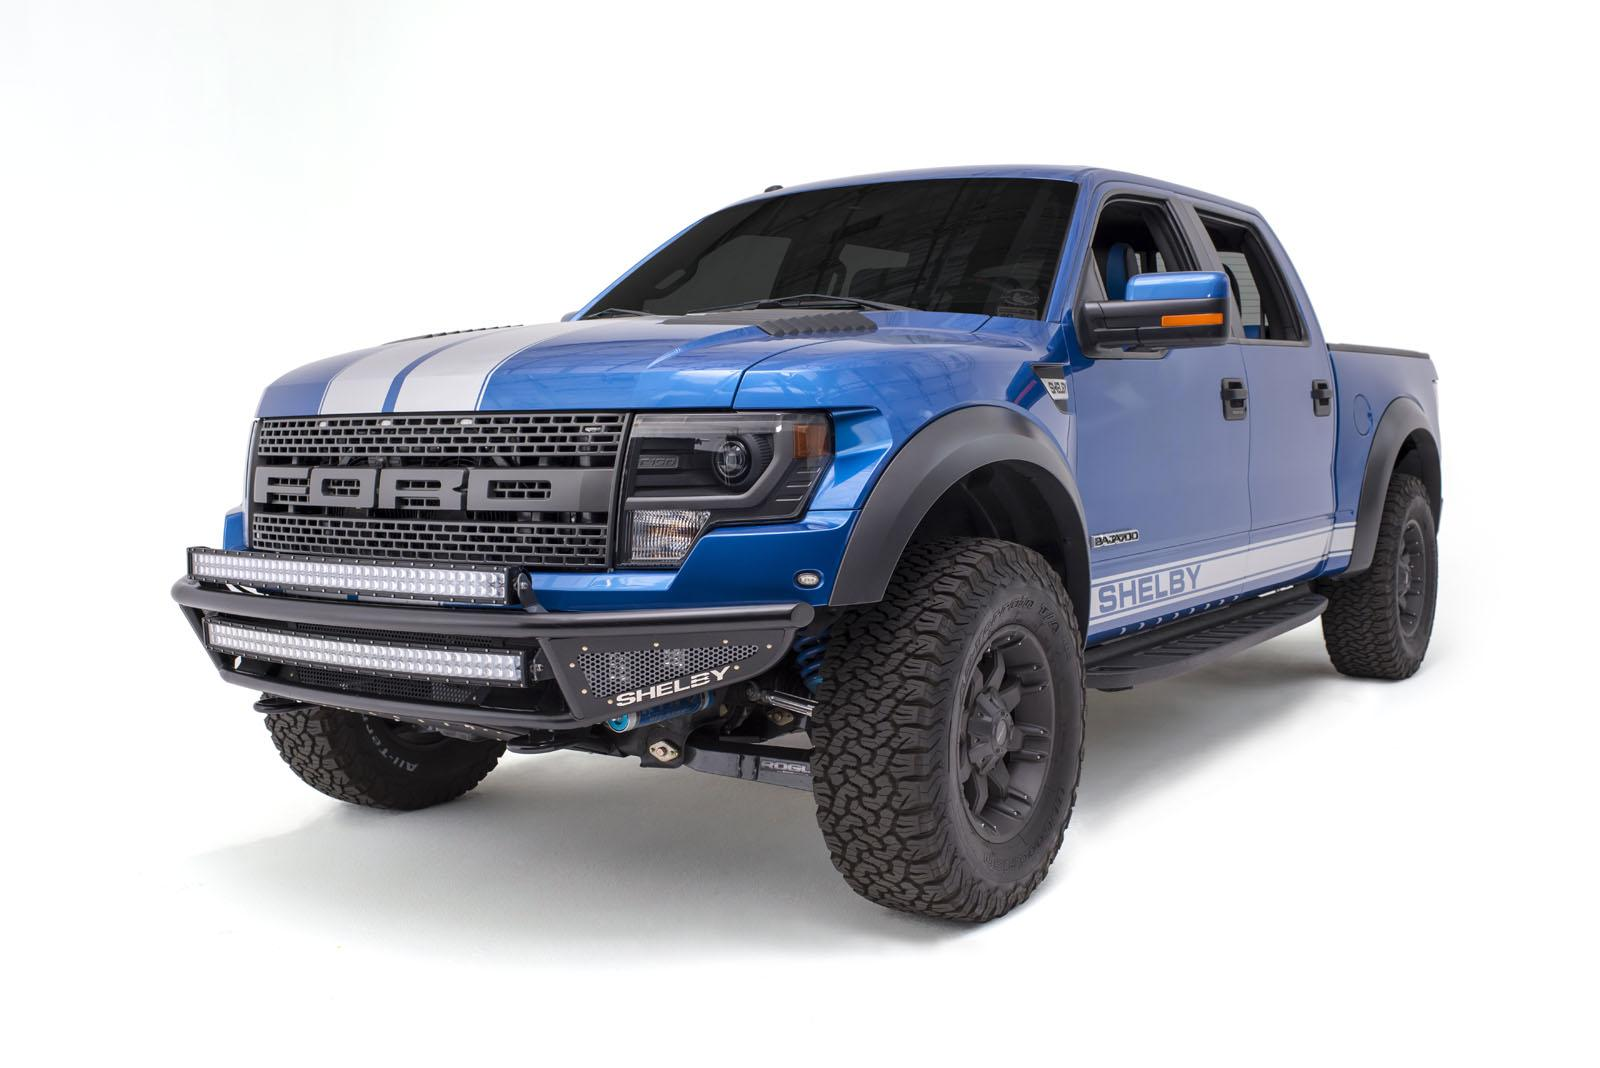 shelby baja 700 tuning program for 2011 2014 ford f 150 svt raptor